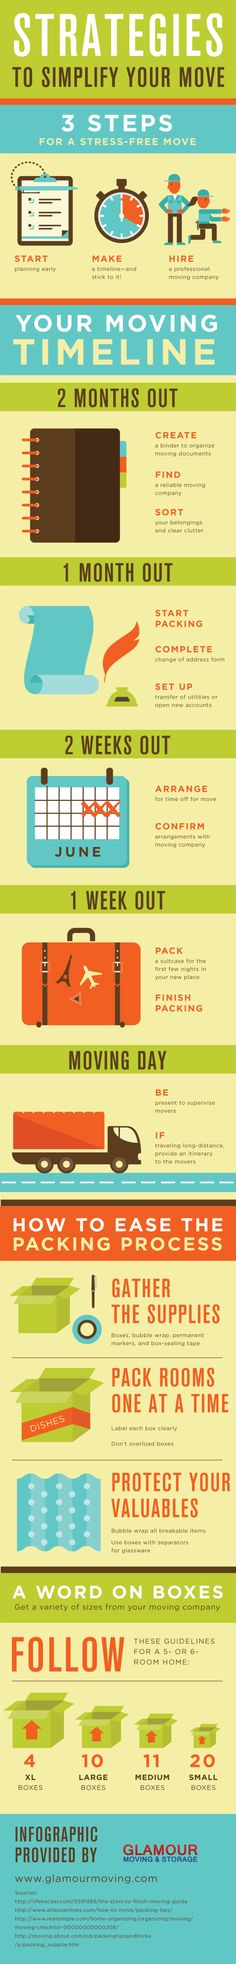 Making a moving timeline and hiring a professional moving company can make the transition from your current home to your new one as easy as possible! Take a look at this Baltimore residential mover infographic to get more advice.